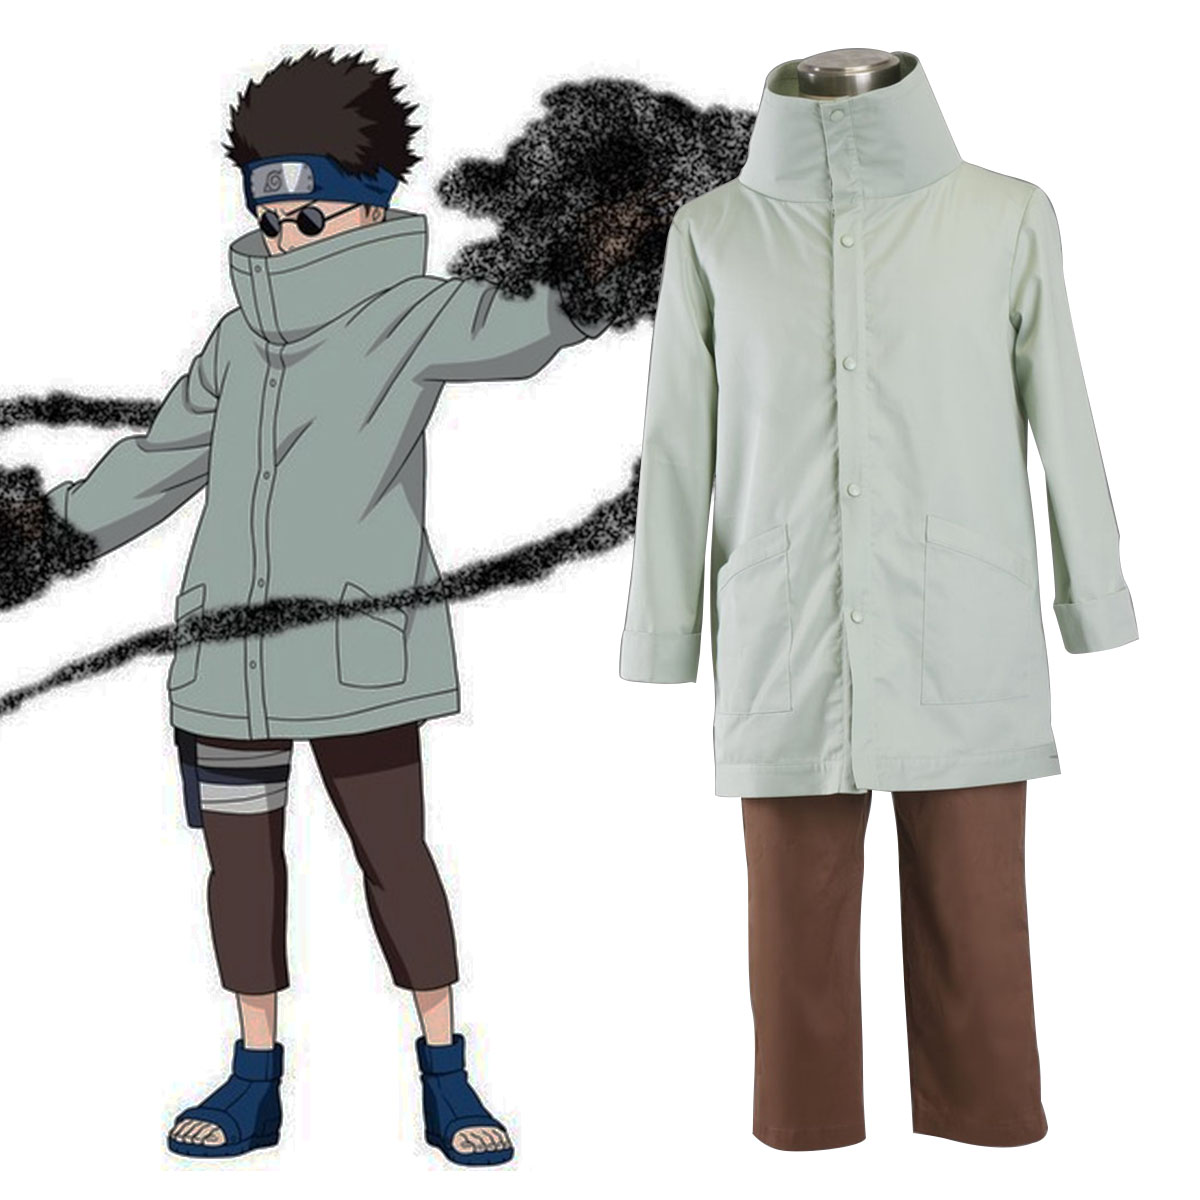 Naruto Aburame Shino 1 Cosplay Costumes New Zealand Online Store